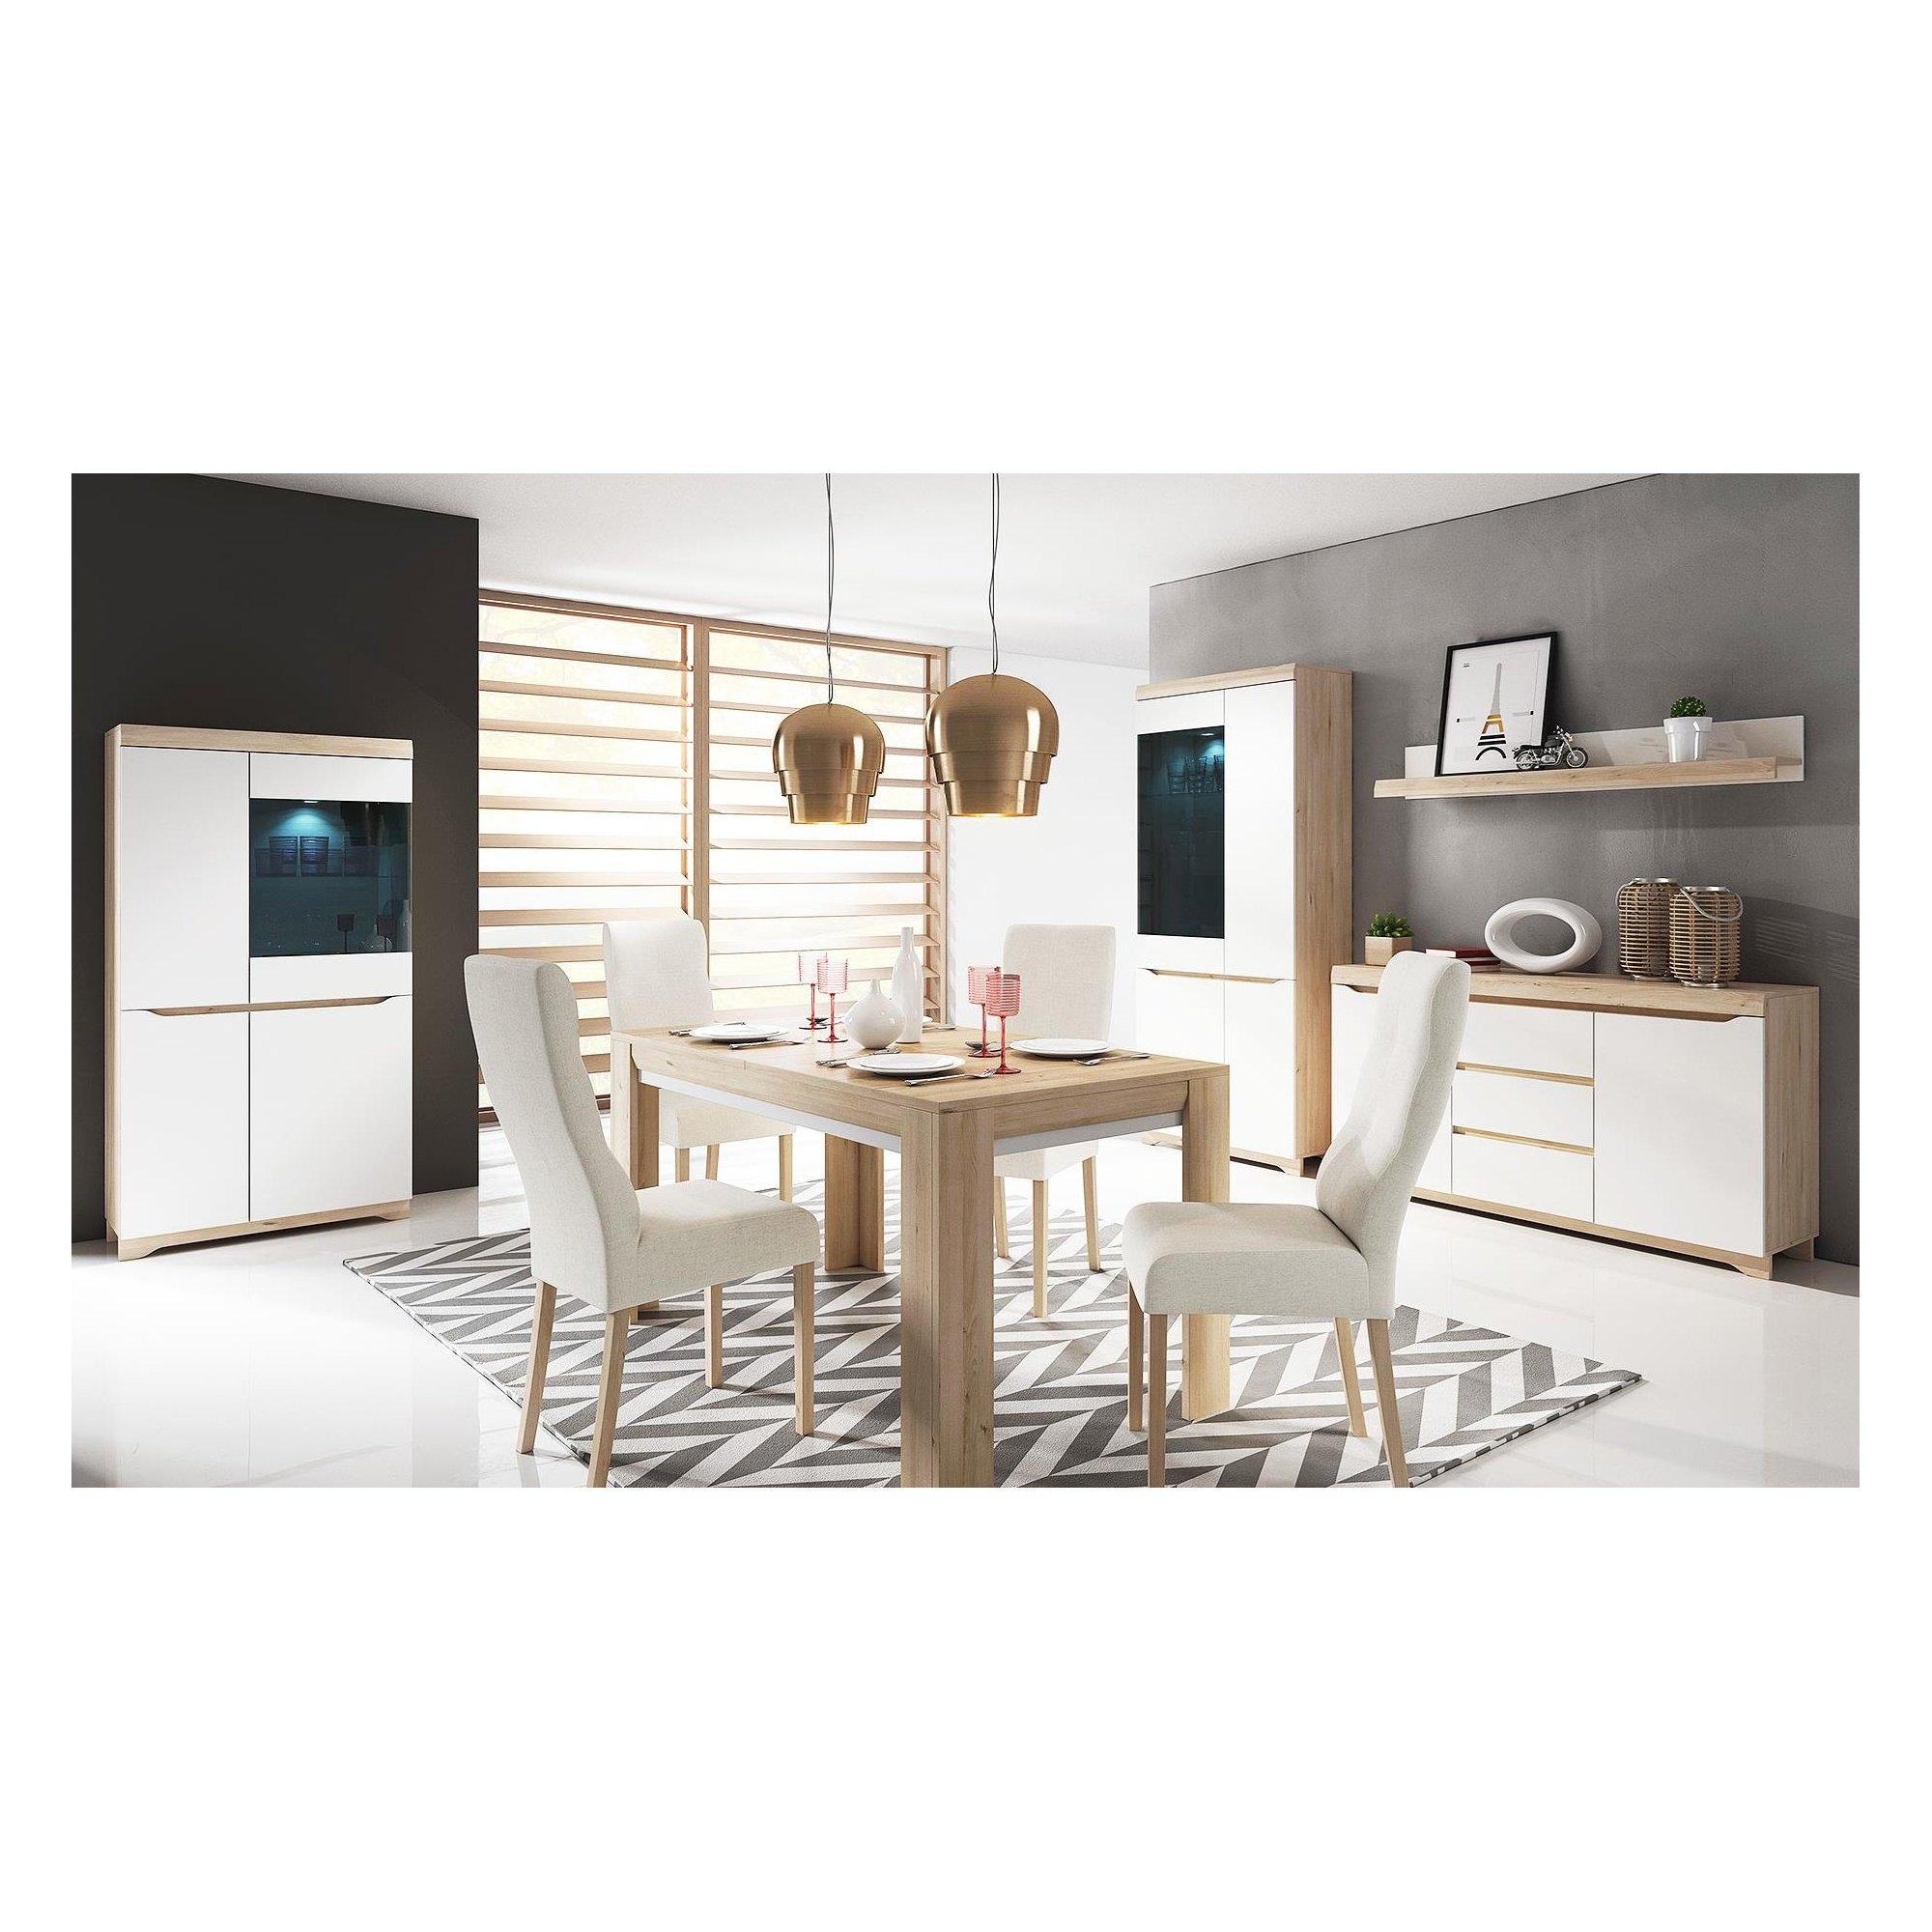 beech dining room furniture | Dining room furniture in white/beech colour - Almond Furniture